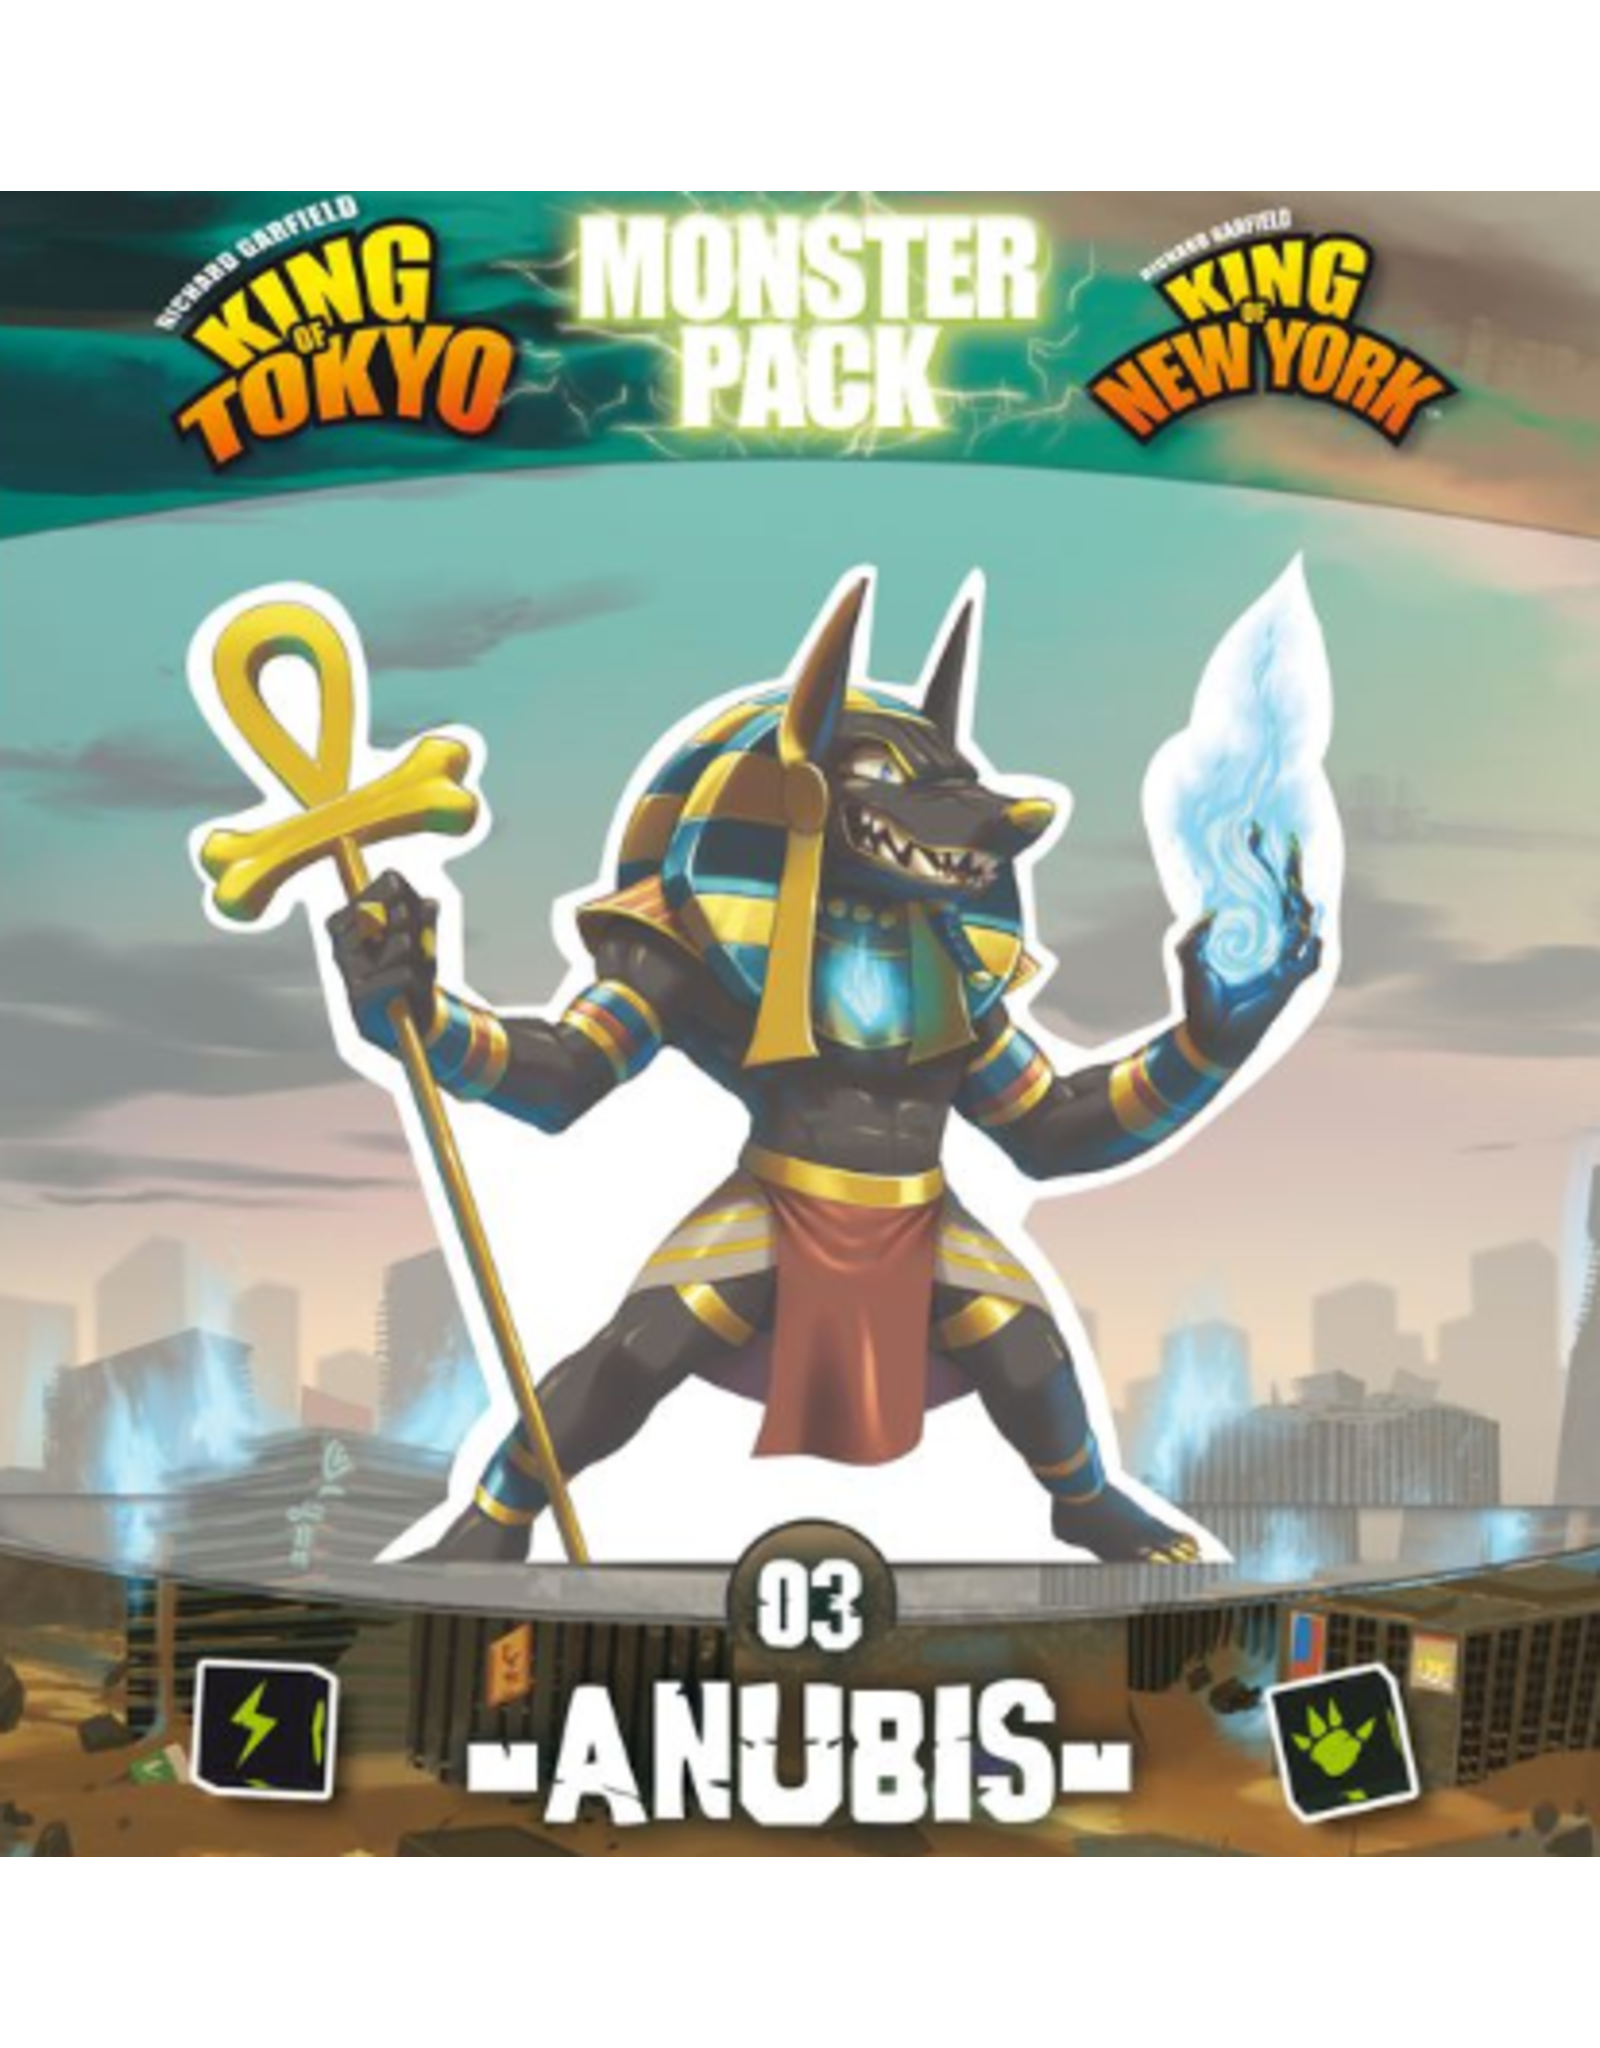 iello King of Tokyo: New York Anubis Monster Pack